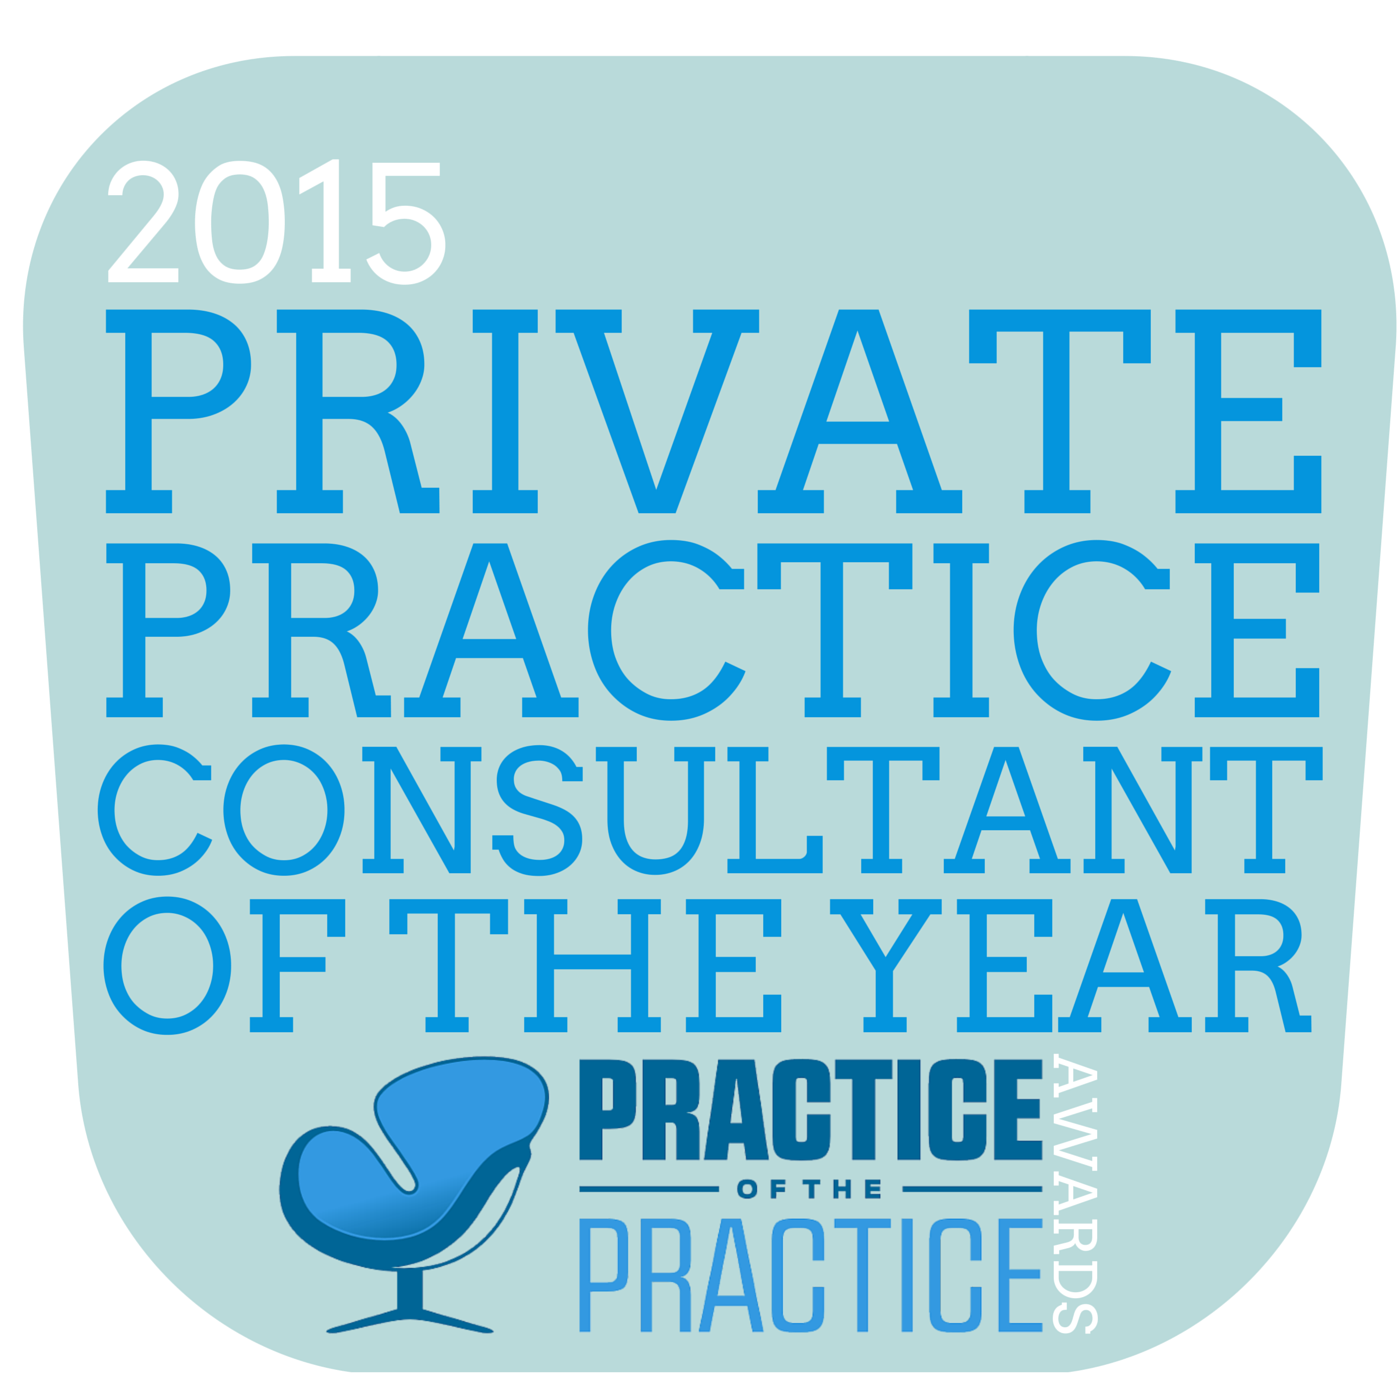 2015 Private Practice Consultant of the Year